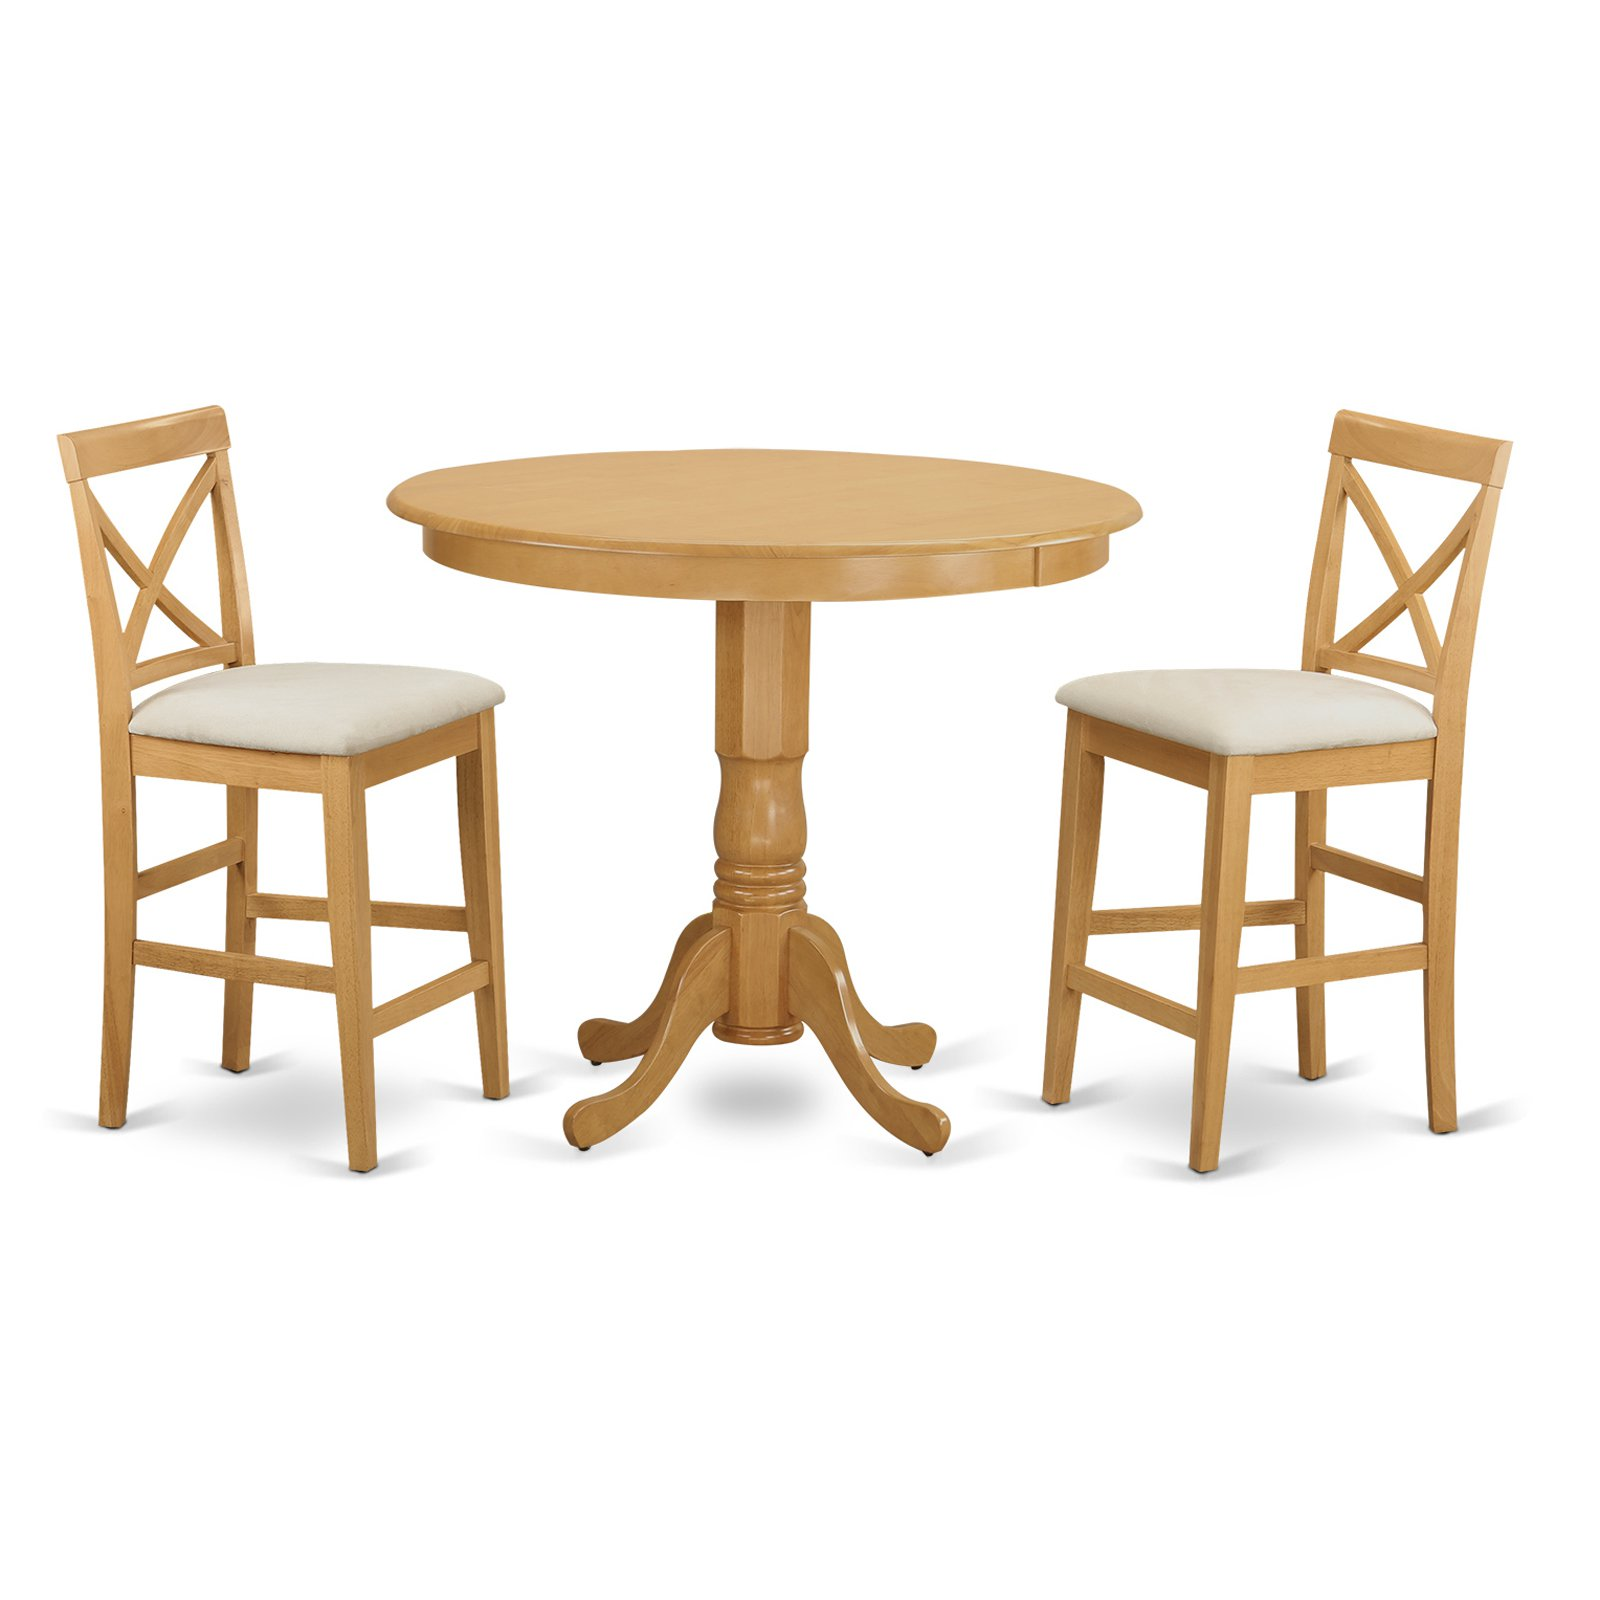 East West Furniture Trenton 3 Piece High Cross Dining Table Set